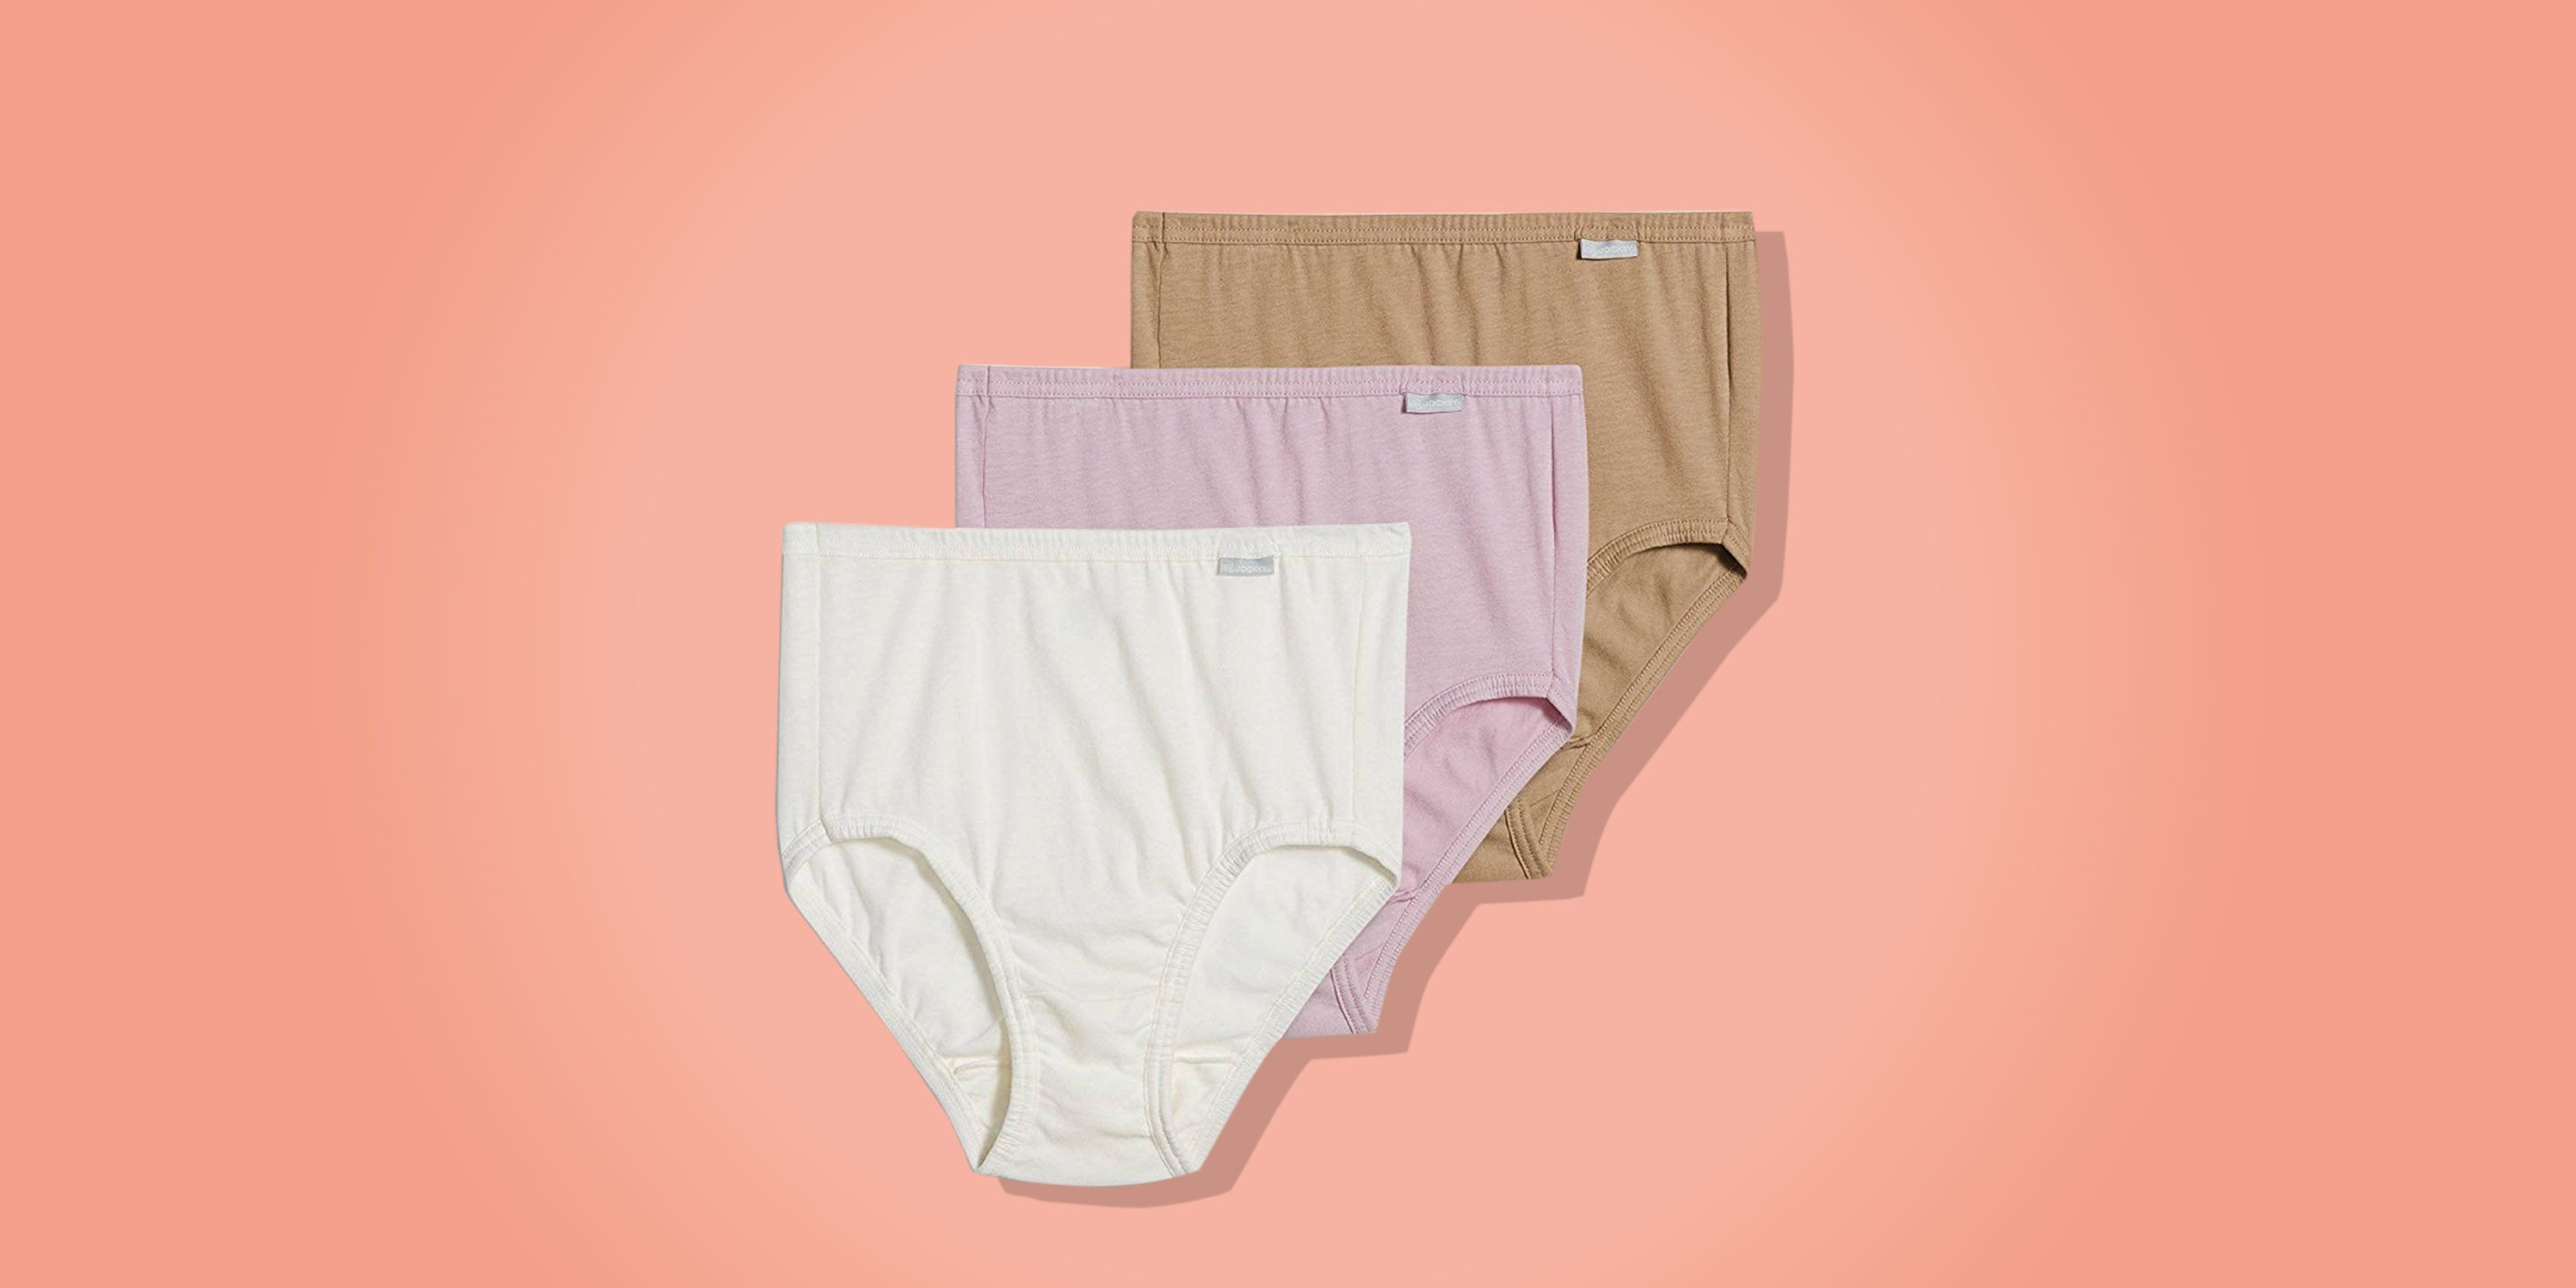 Granny Panties are Selling Better Than Thongs Among Cool YoungWomen recommend